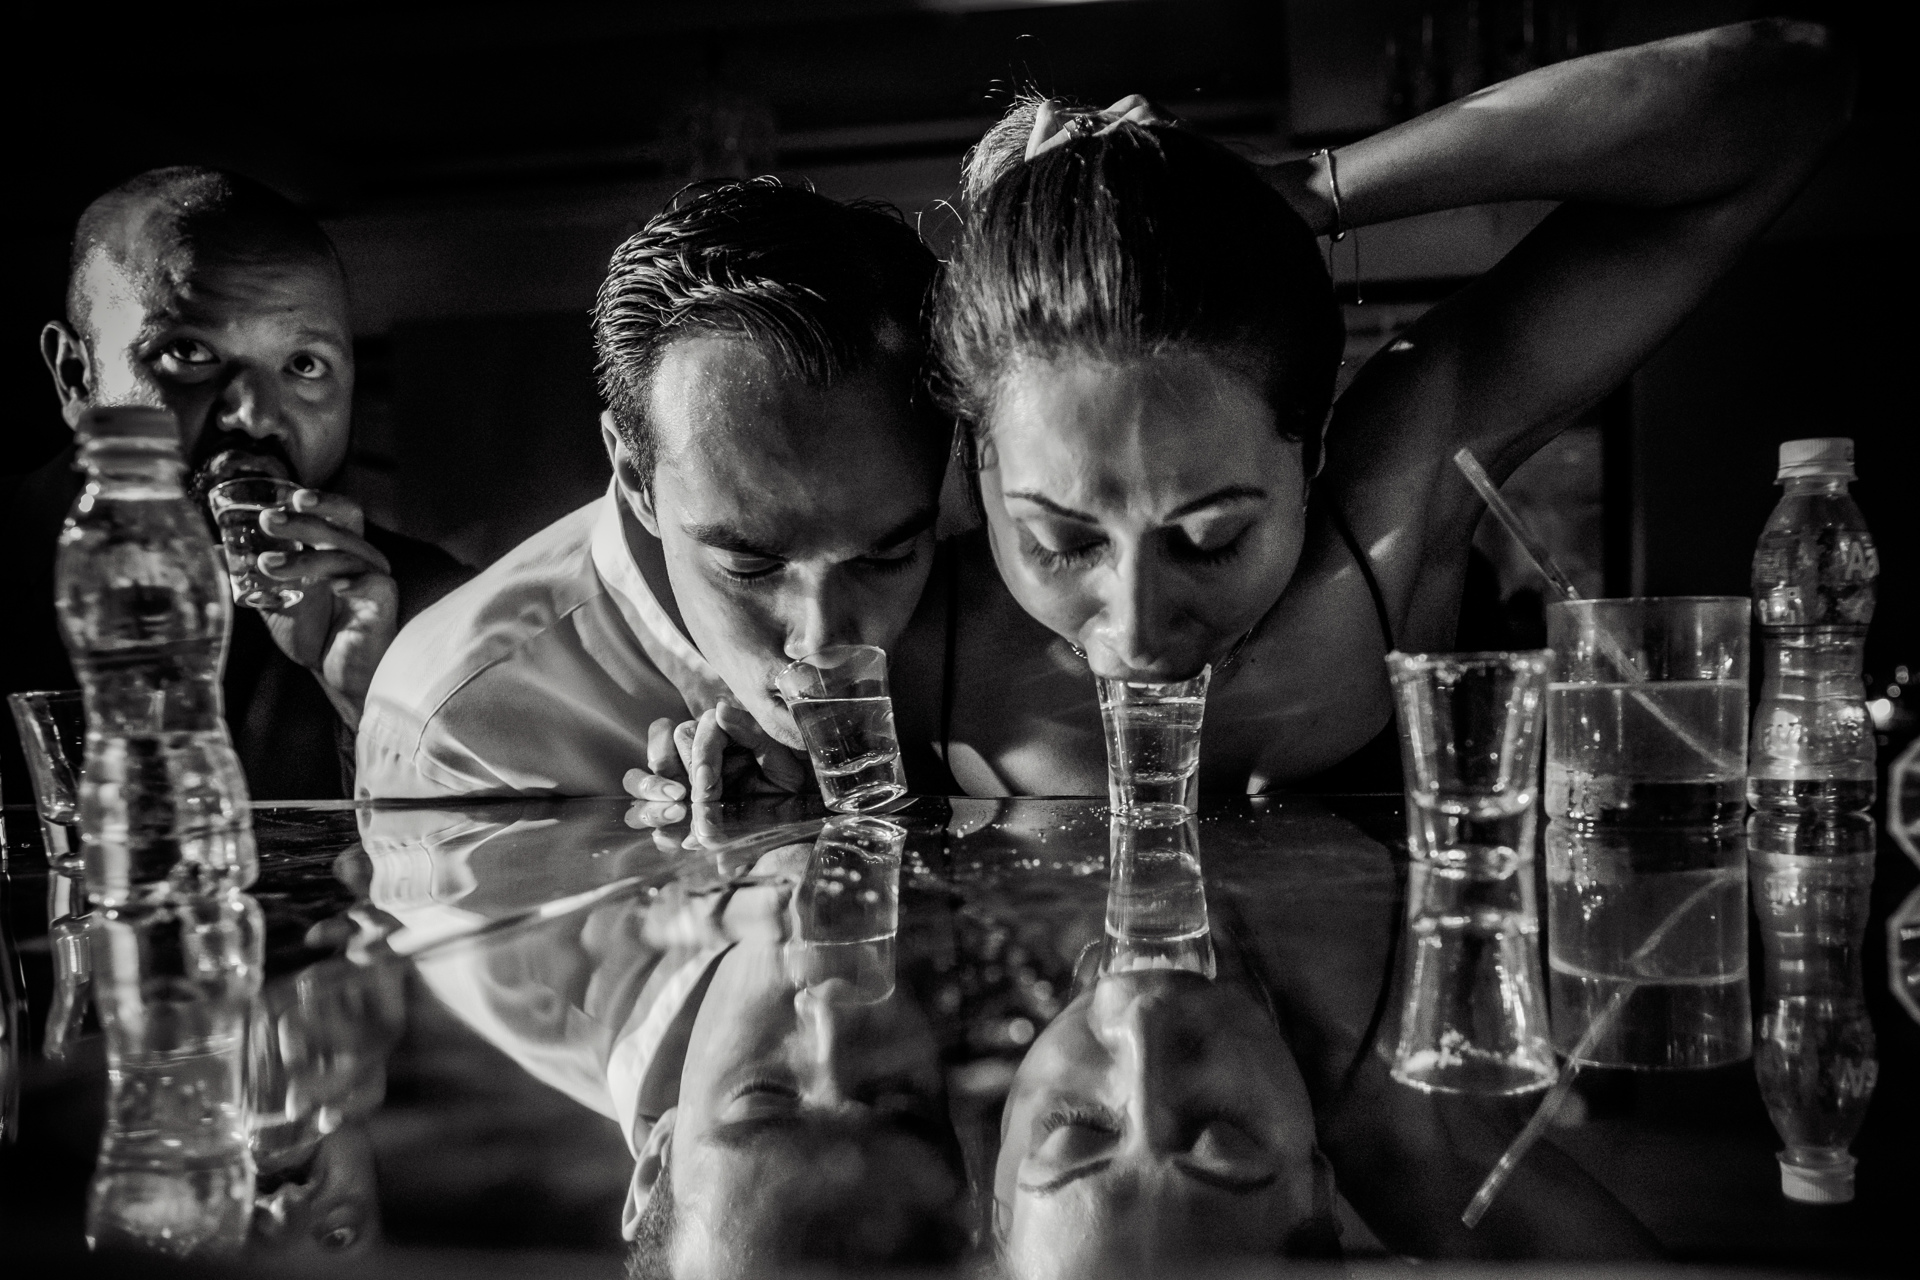 Couple taking shots off the bar - photo by Sephi Bergerson